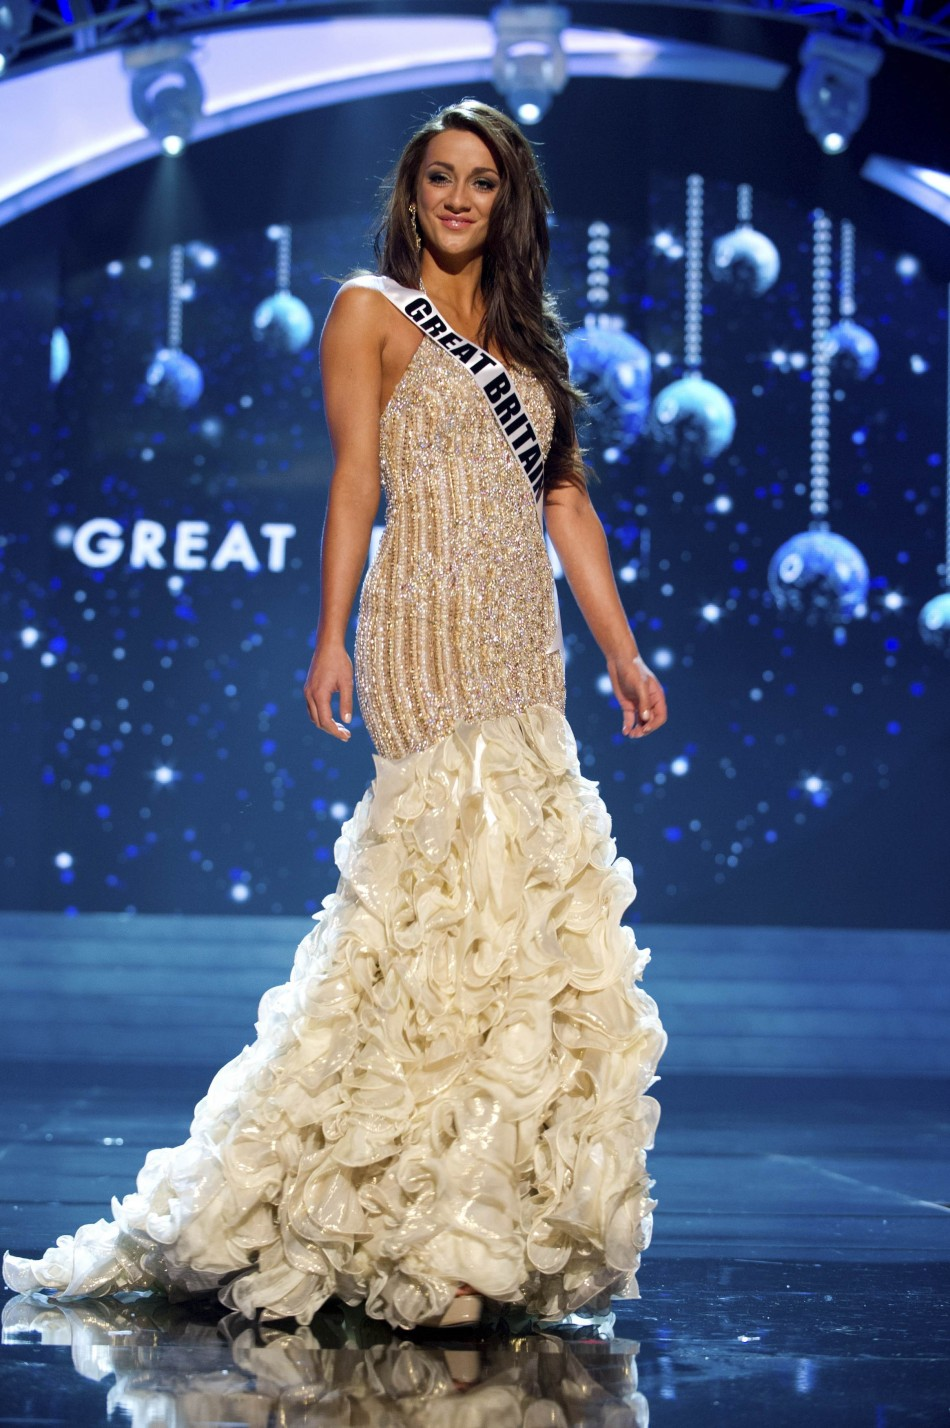 Miss Great Britain 2012 Hale competes in an evening gown of her choice during the Evening Gown Competition of the 2012 Miss Universe Presentation Show in Las Vegas